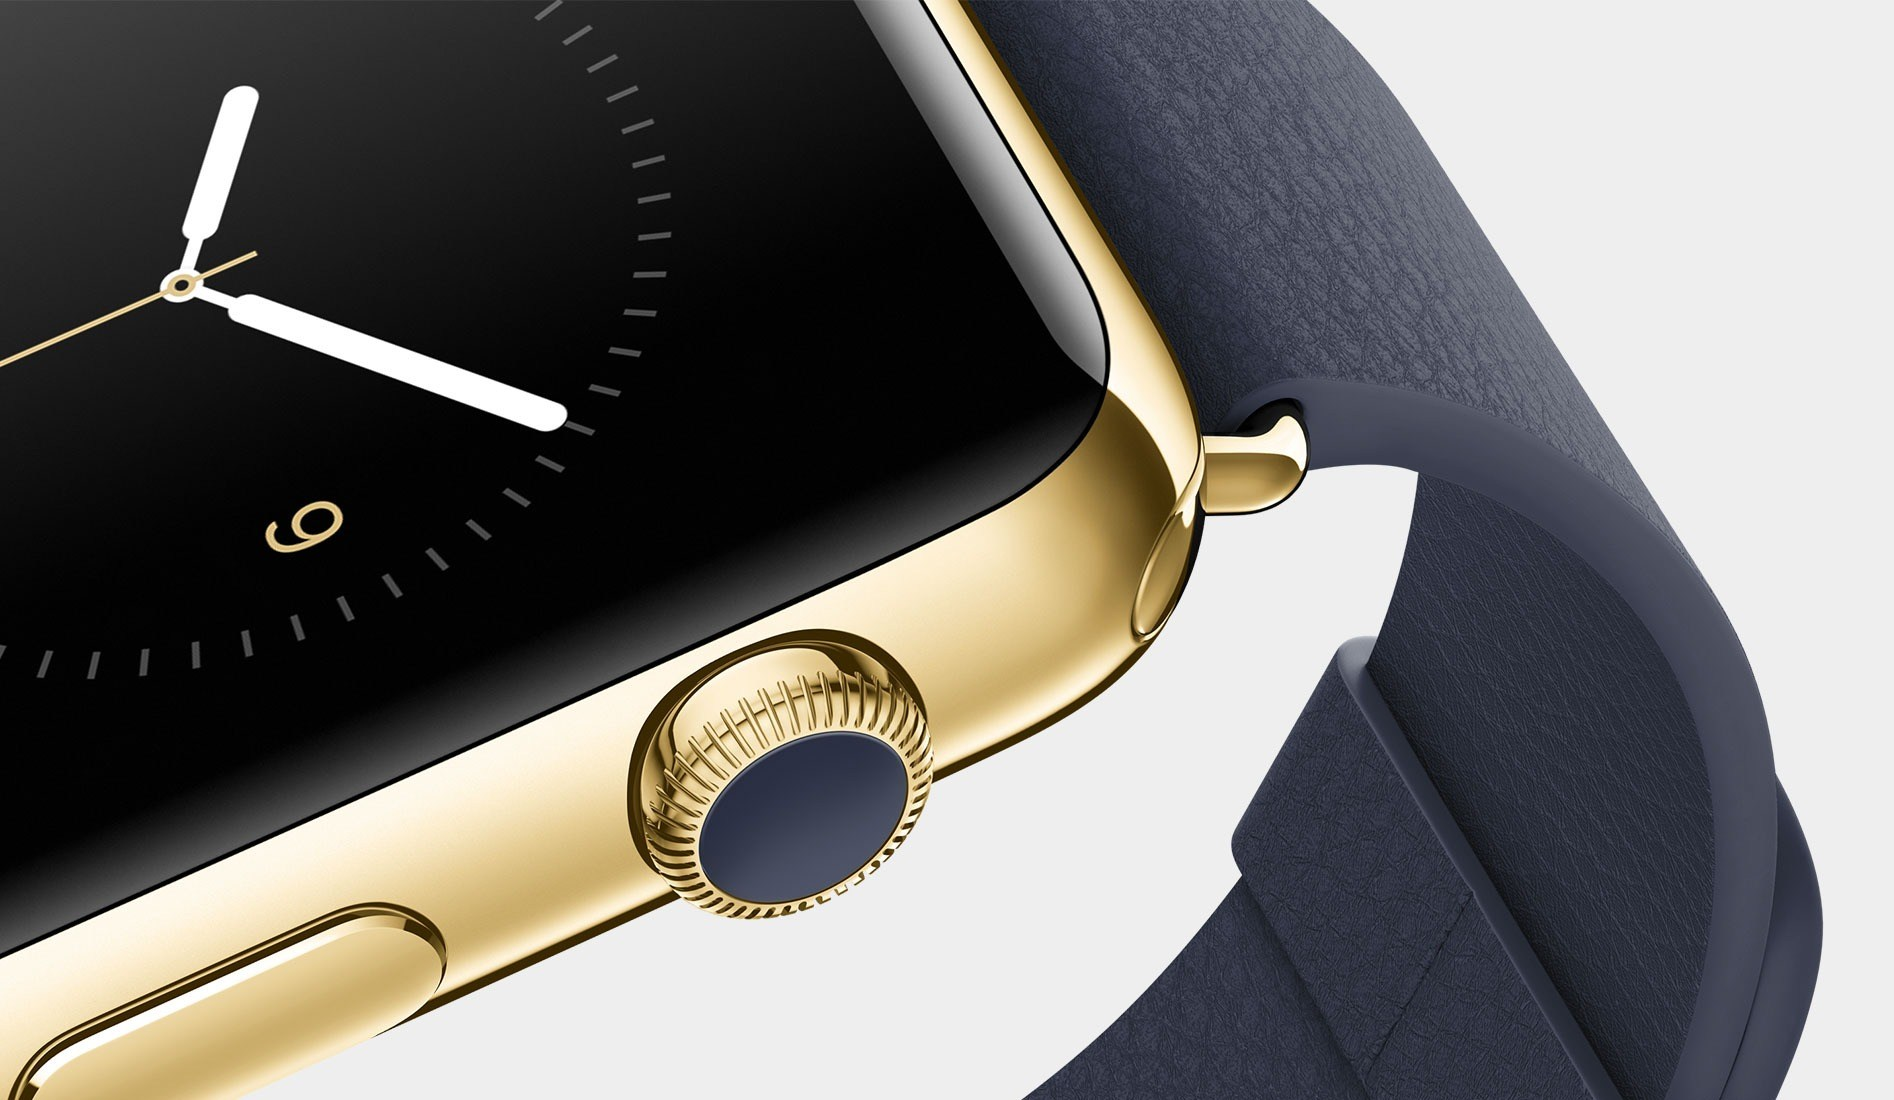 Apple-Watch-1410285976-0-0